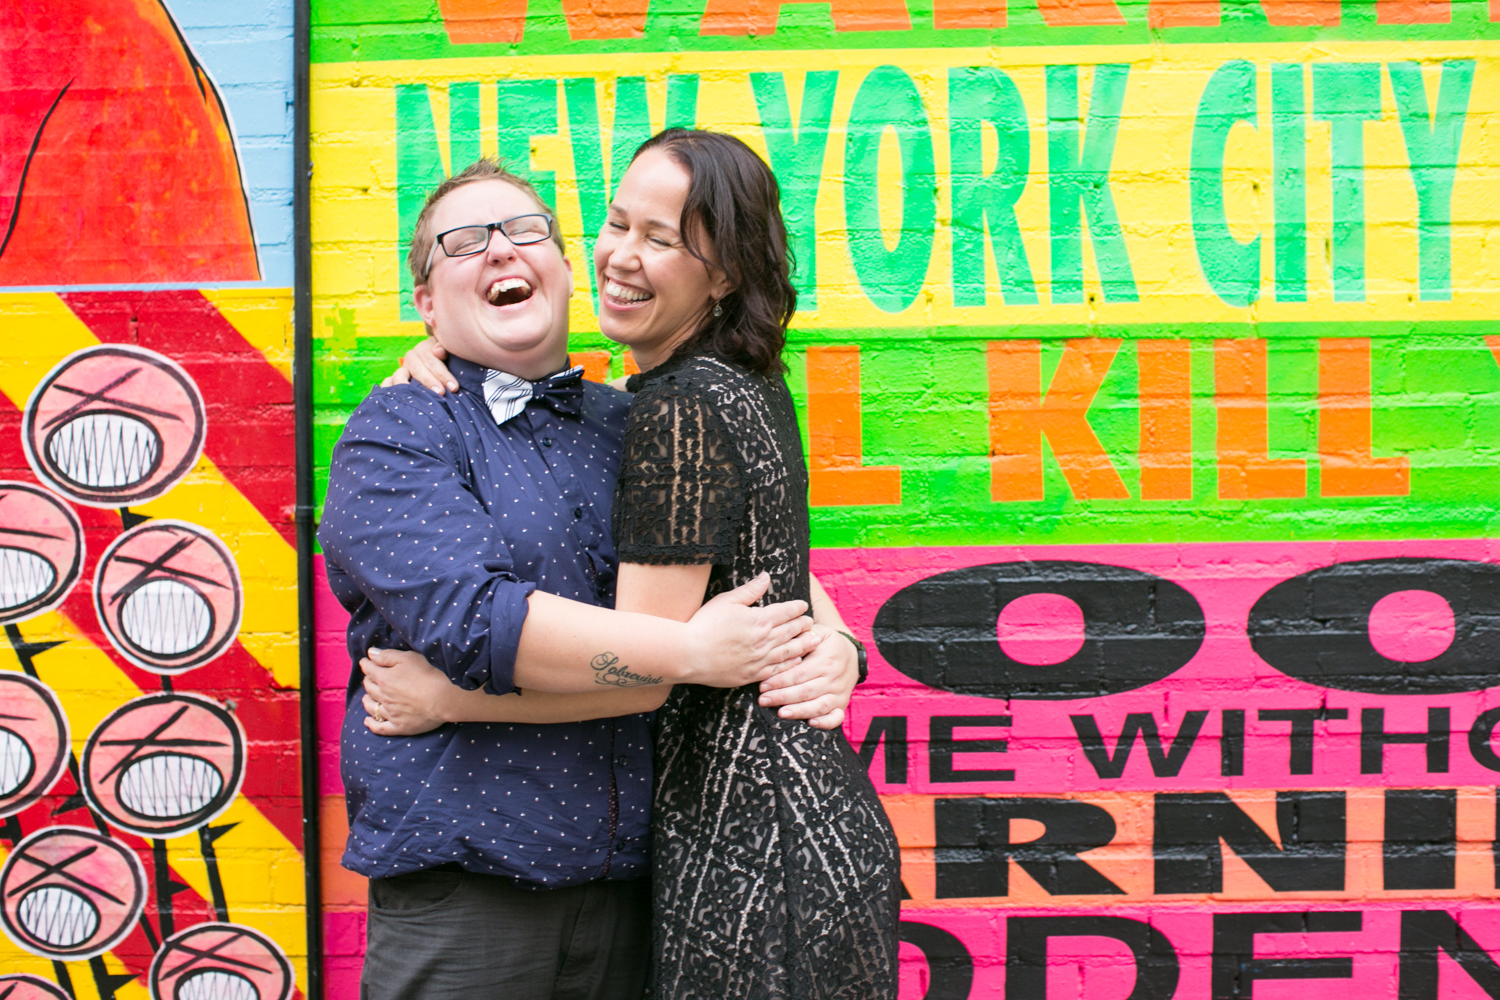 Fun photoshoot for NYC couples anniversary